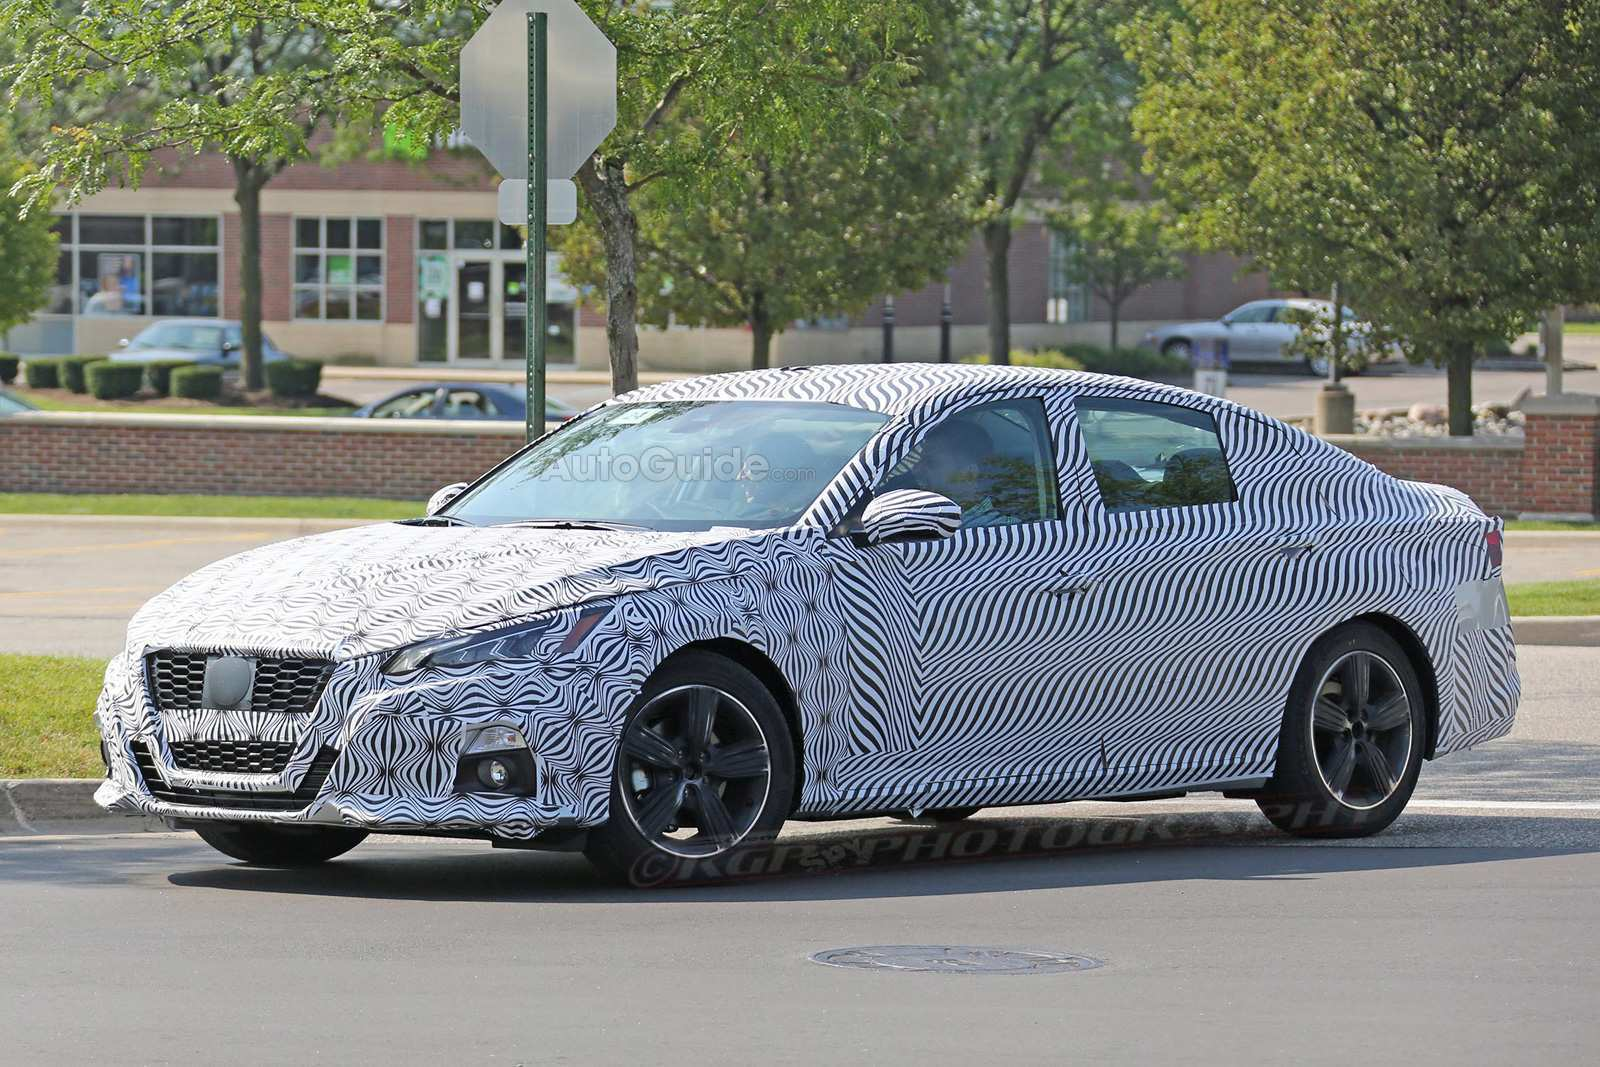 45 New 2019 Nissan Altima Spy Shots Specs and Review with 2019 Nissan Altima Spy Shots